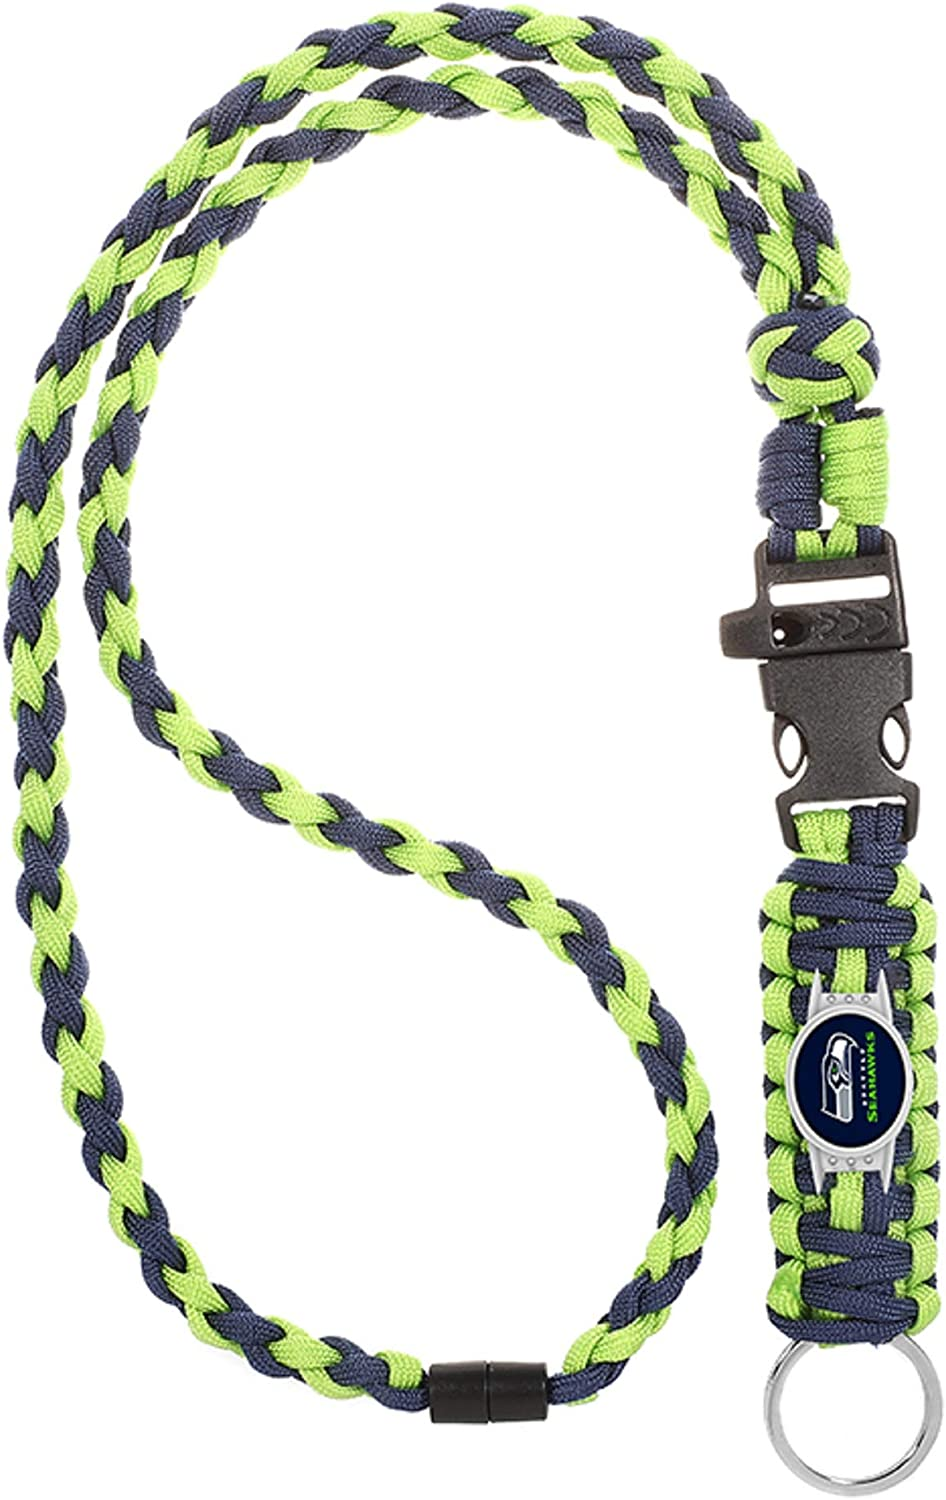 and Keychain Release Neck Clasp Seattle Seahawks Paracord Lanyard with Team Charm